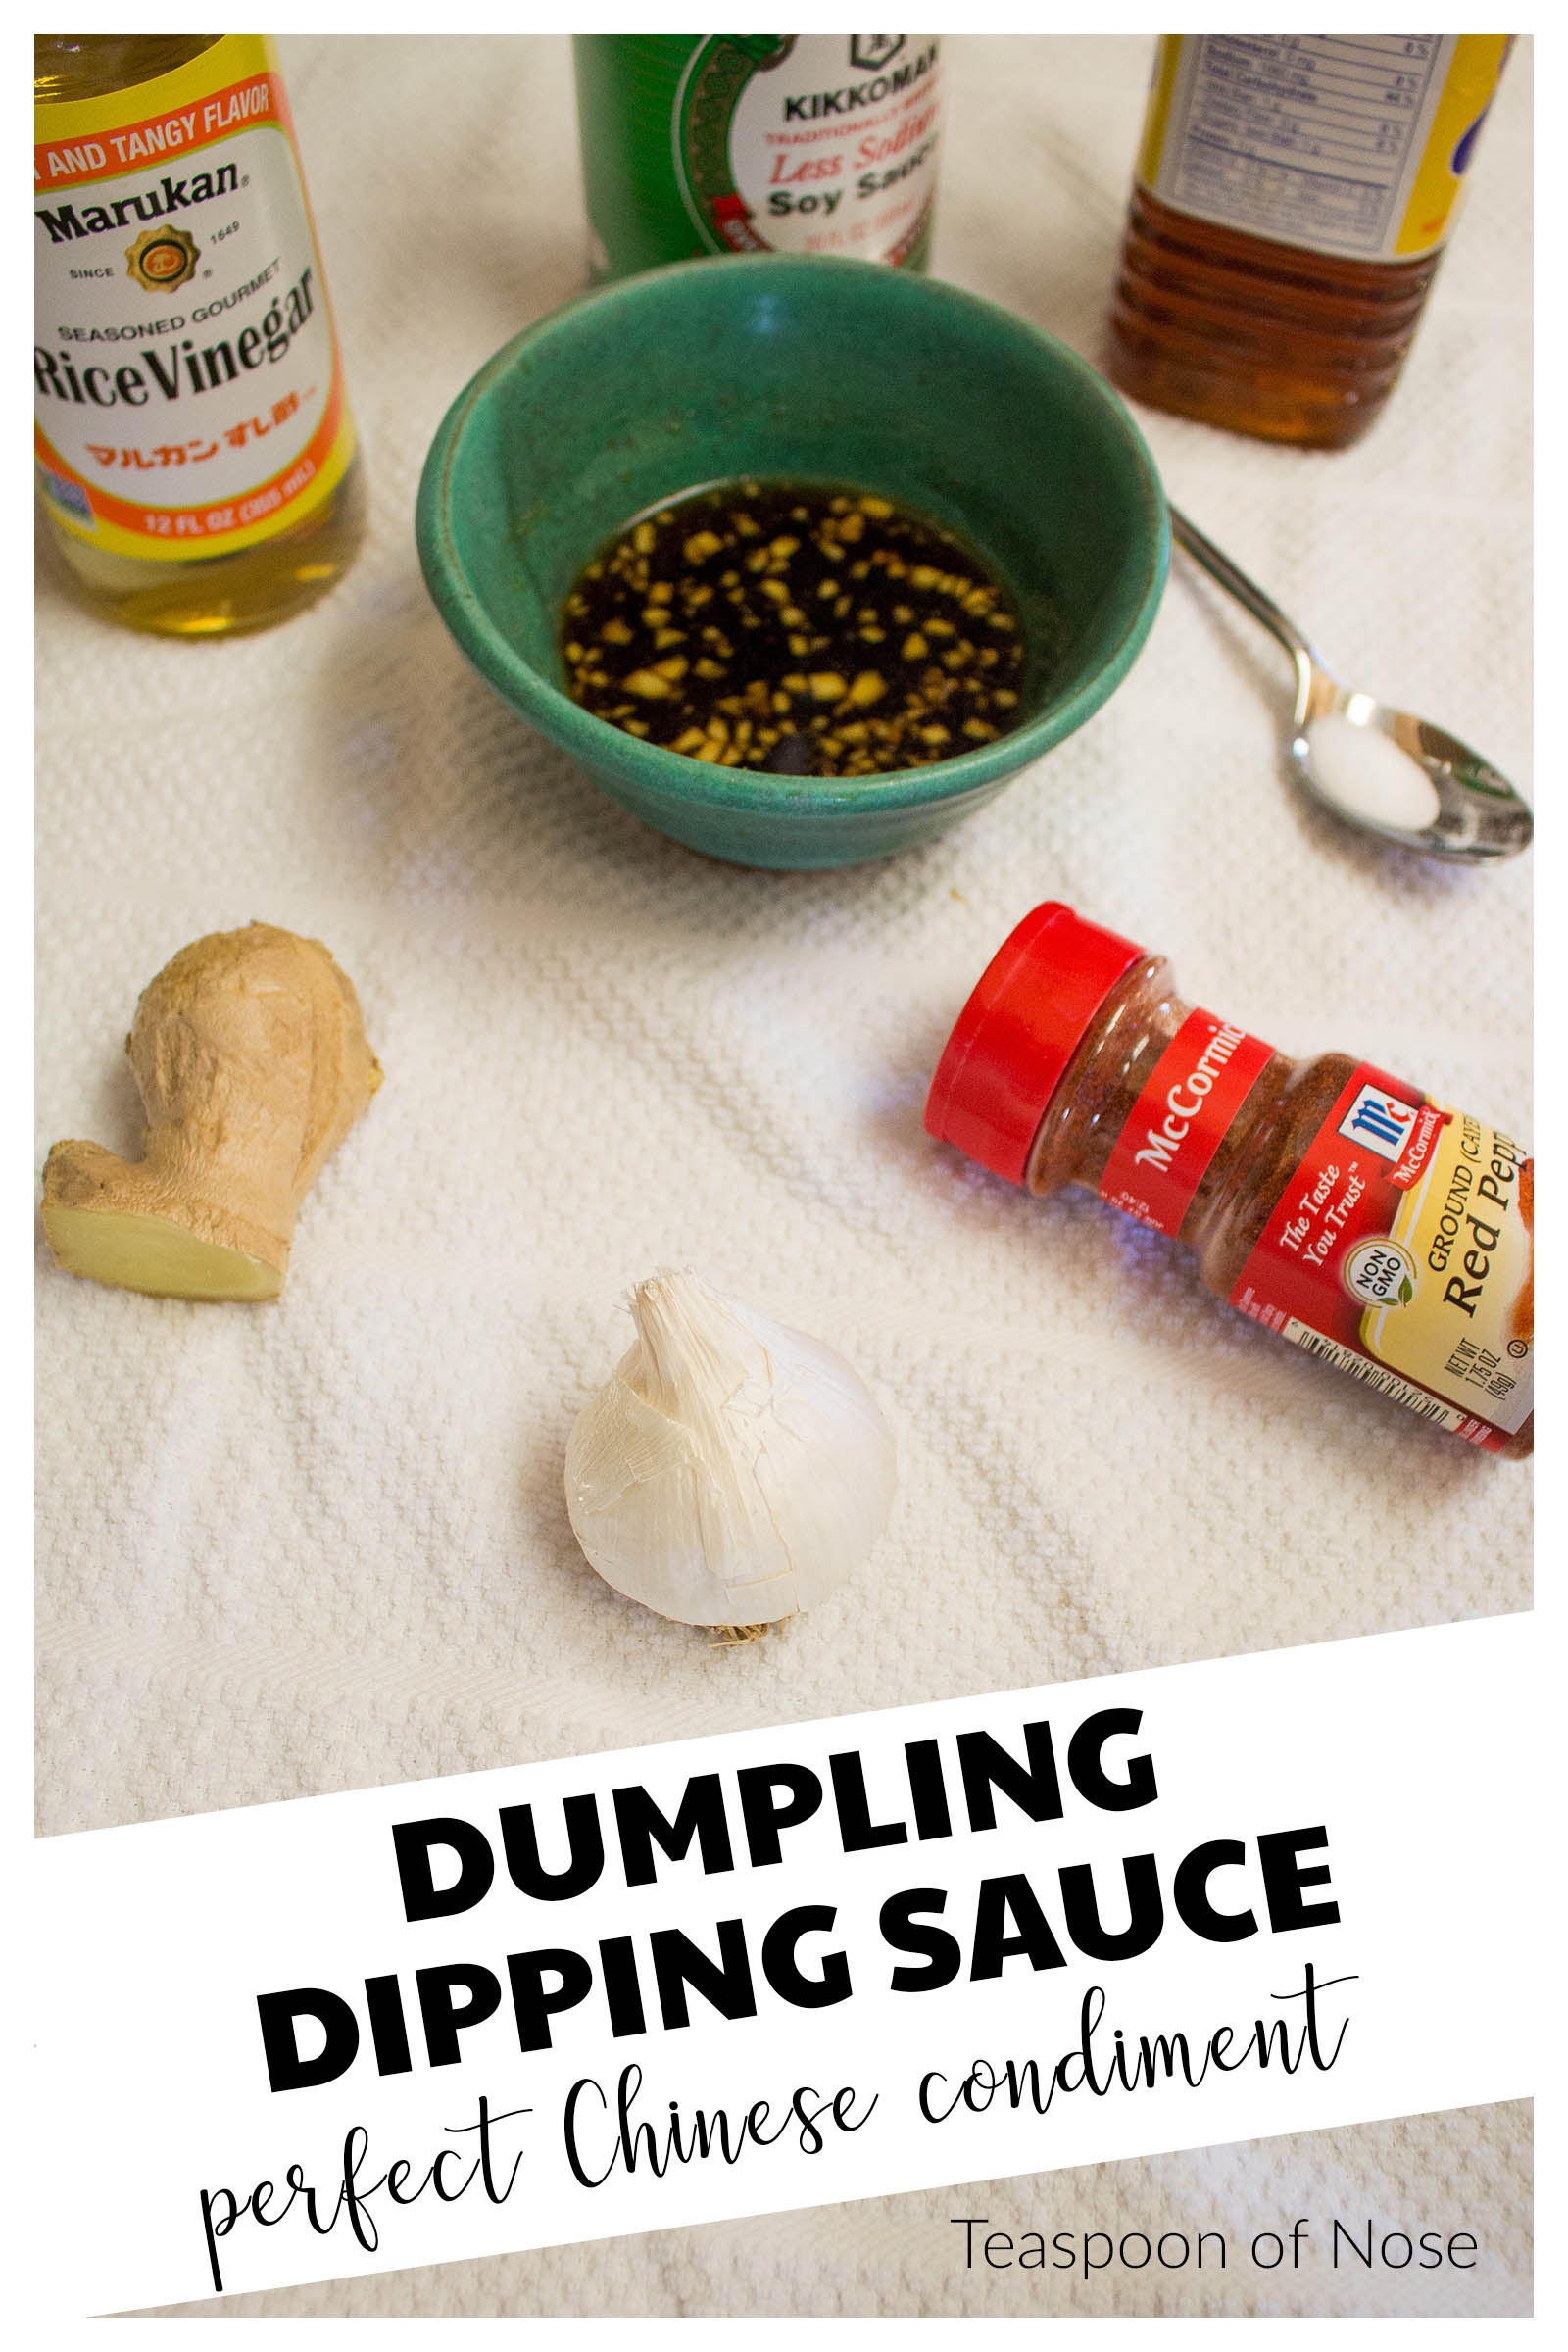 If you're looking for the perfect compliment to your meal, try these two Chinese dipping sauces! Dumpling dipping sauce and ginger scallion dipping sauce are exactly what you need to fix dried out leftovers!